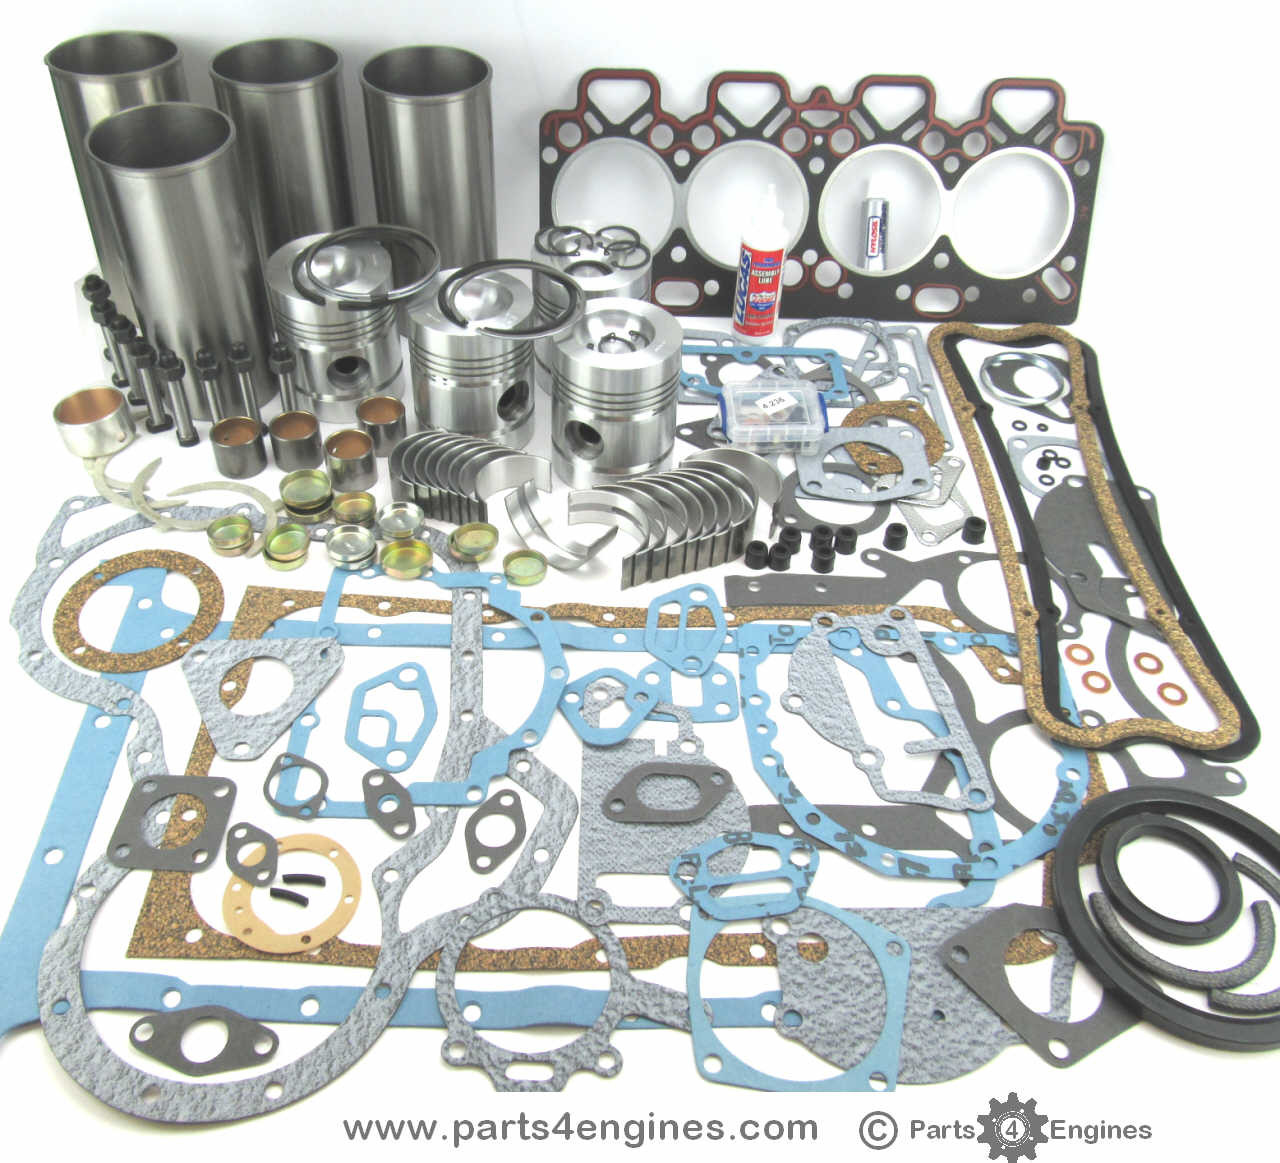 Perkins 4 248 Engine Overhaul Kit